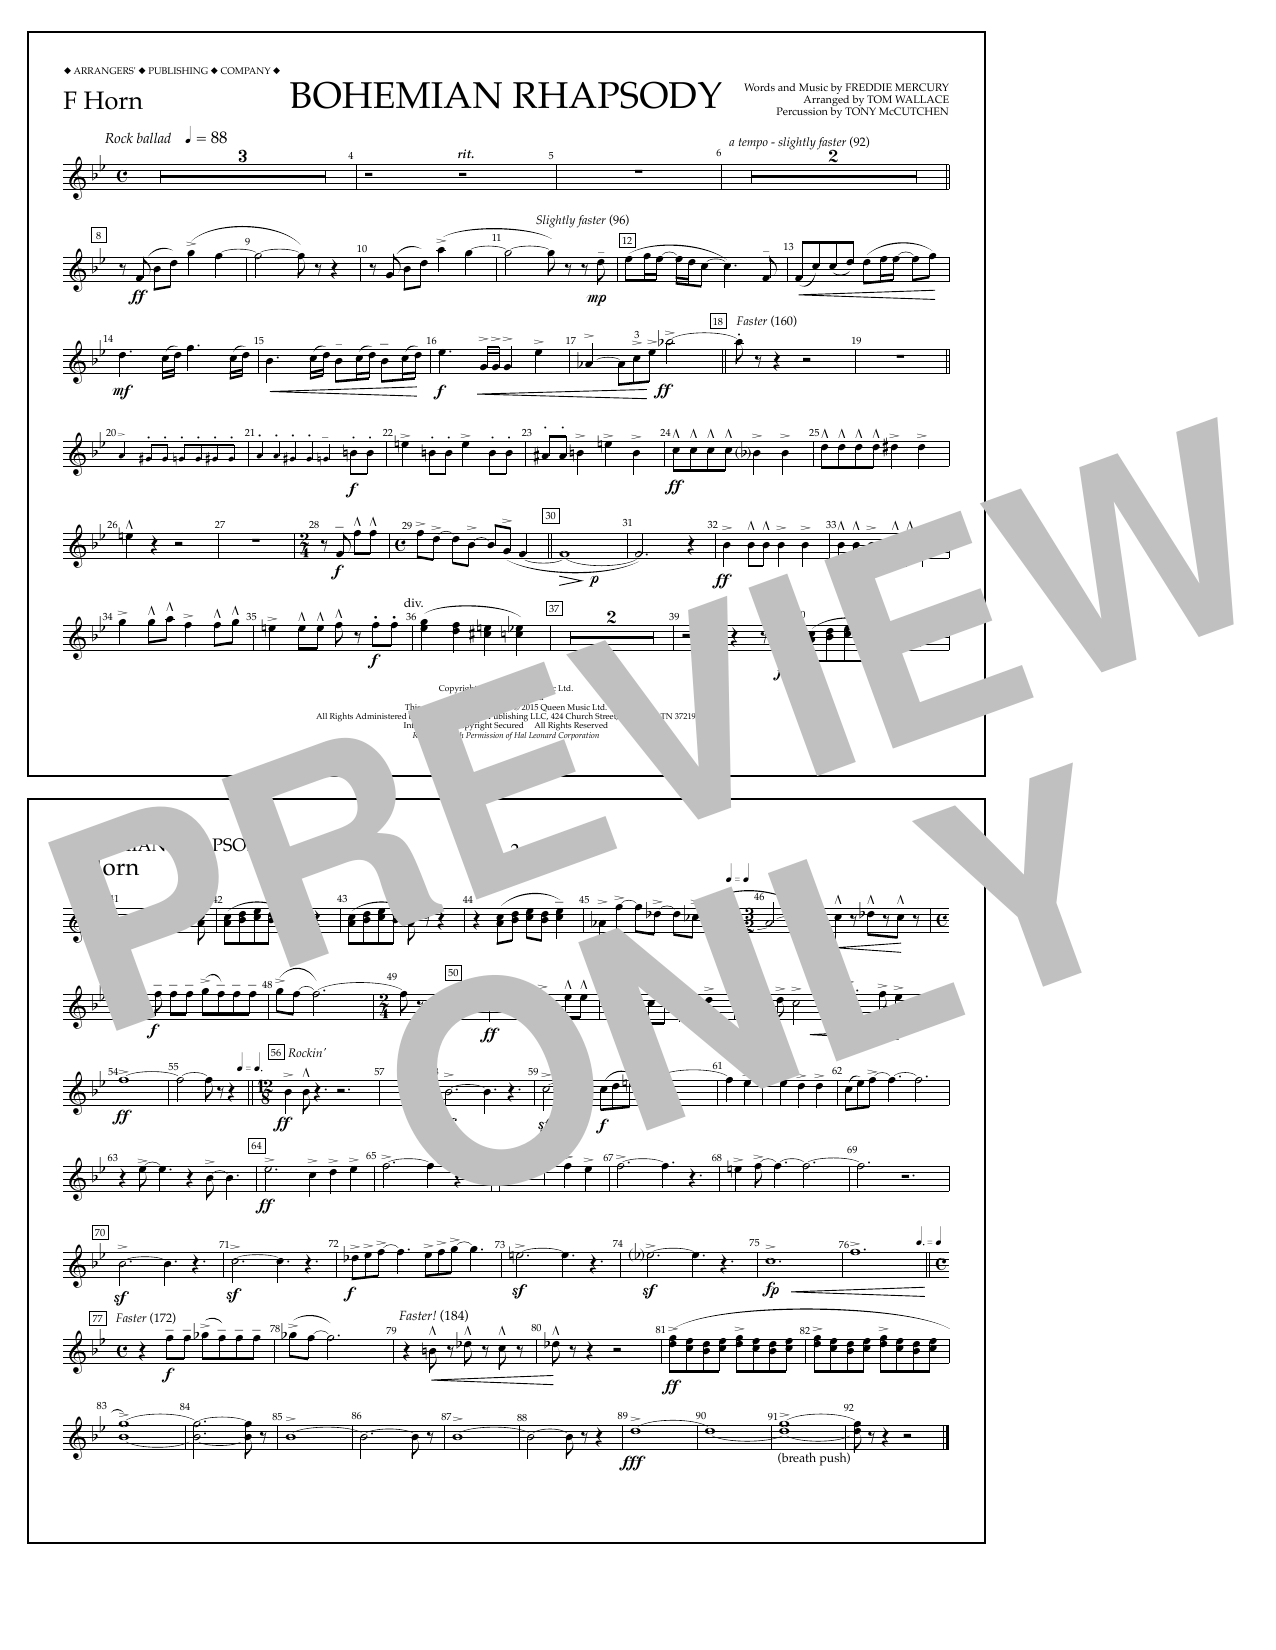 Tom Wallace Bohemian Rhapsody - F Horn sheet music notes and chords